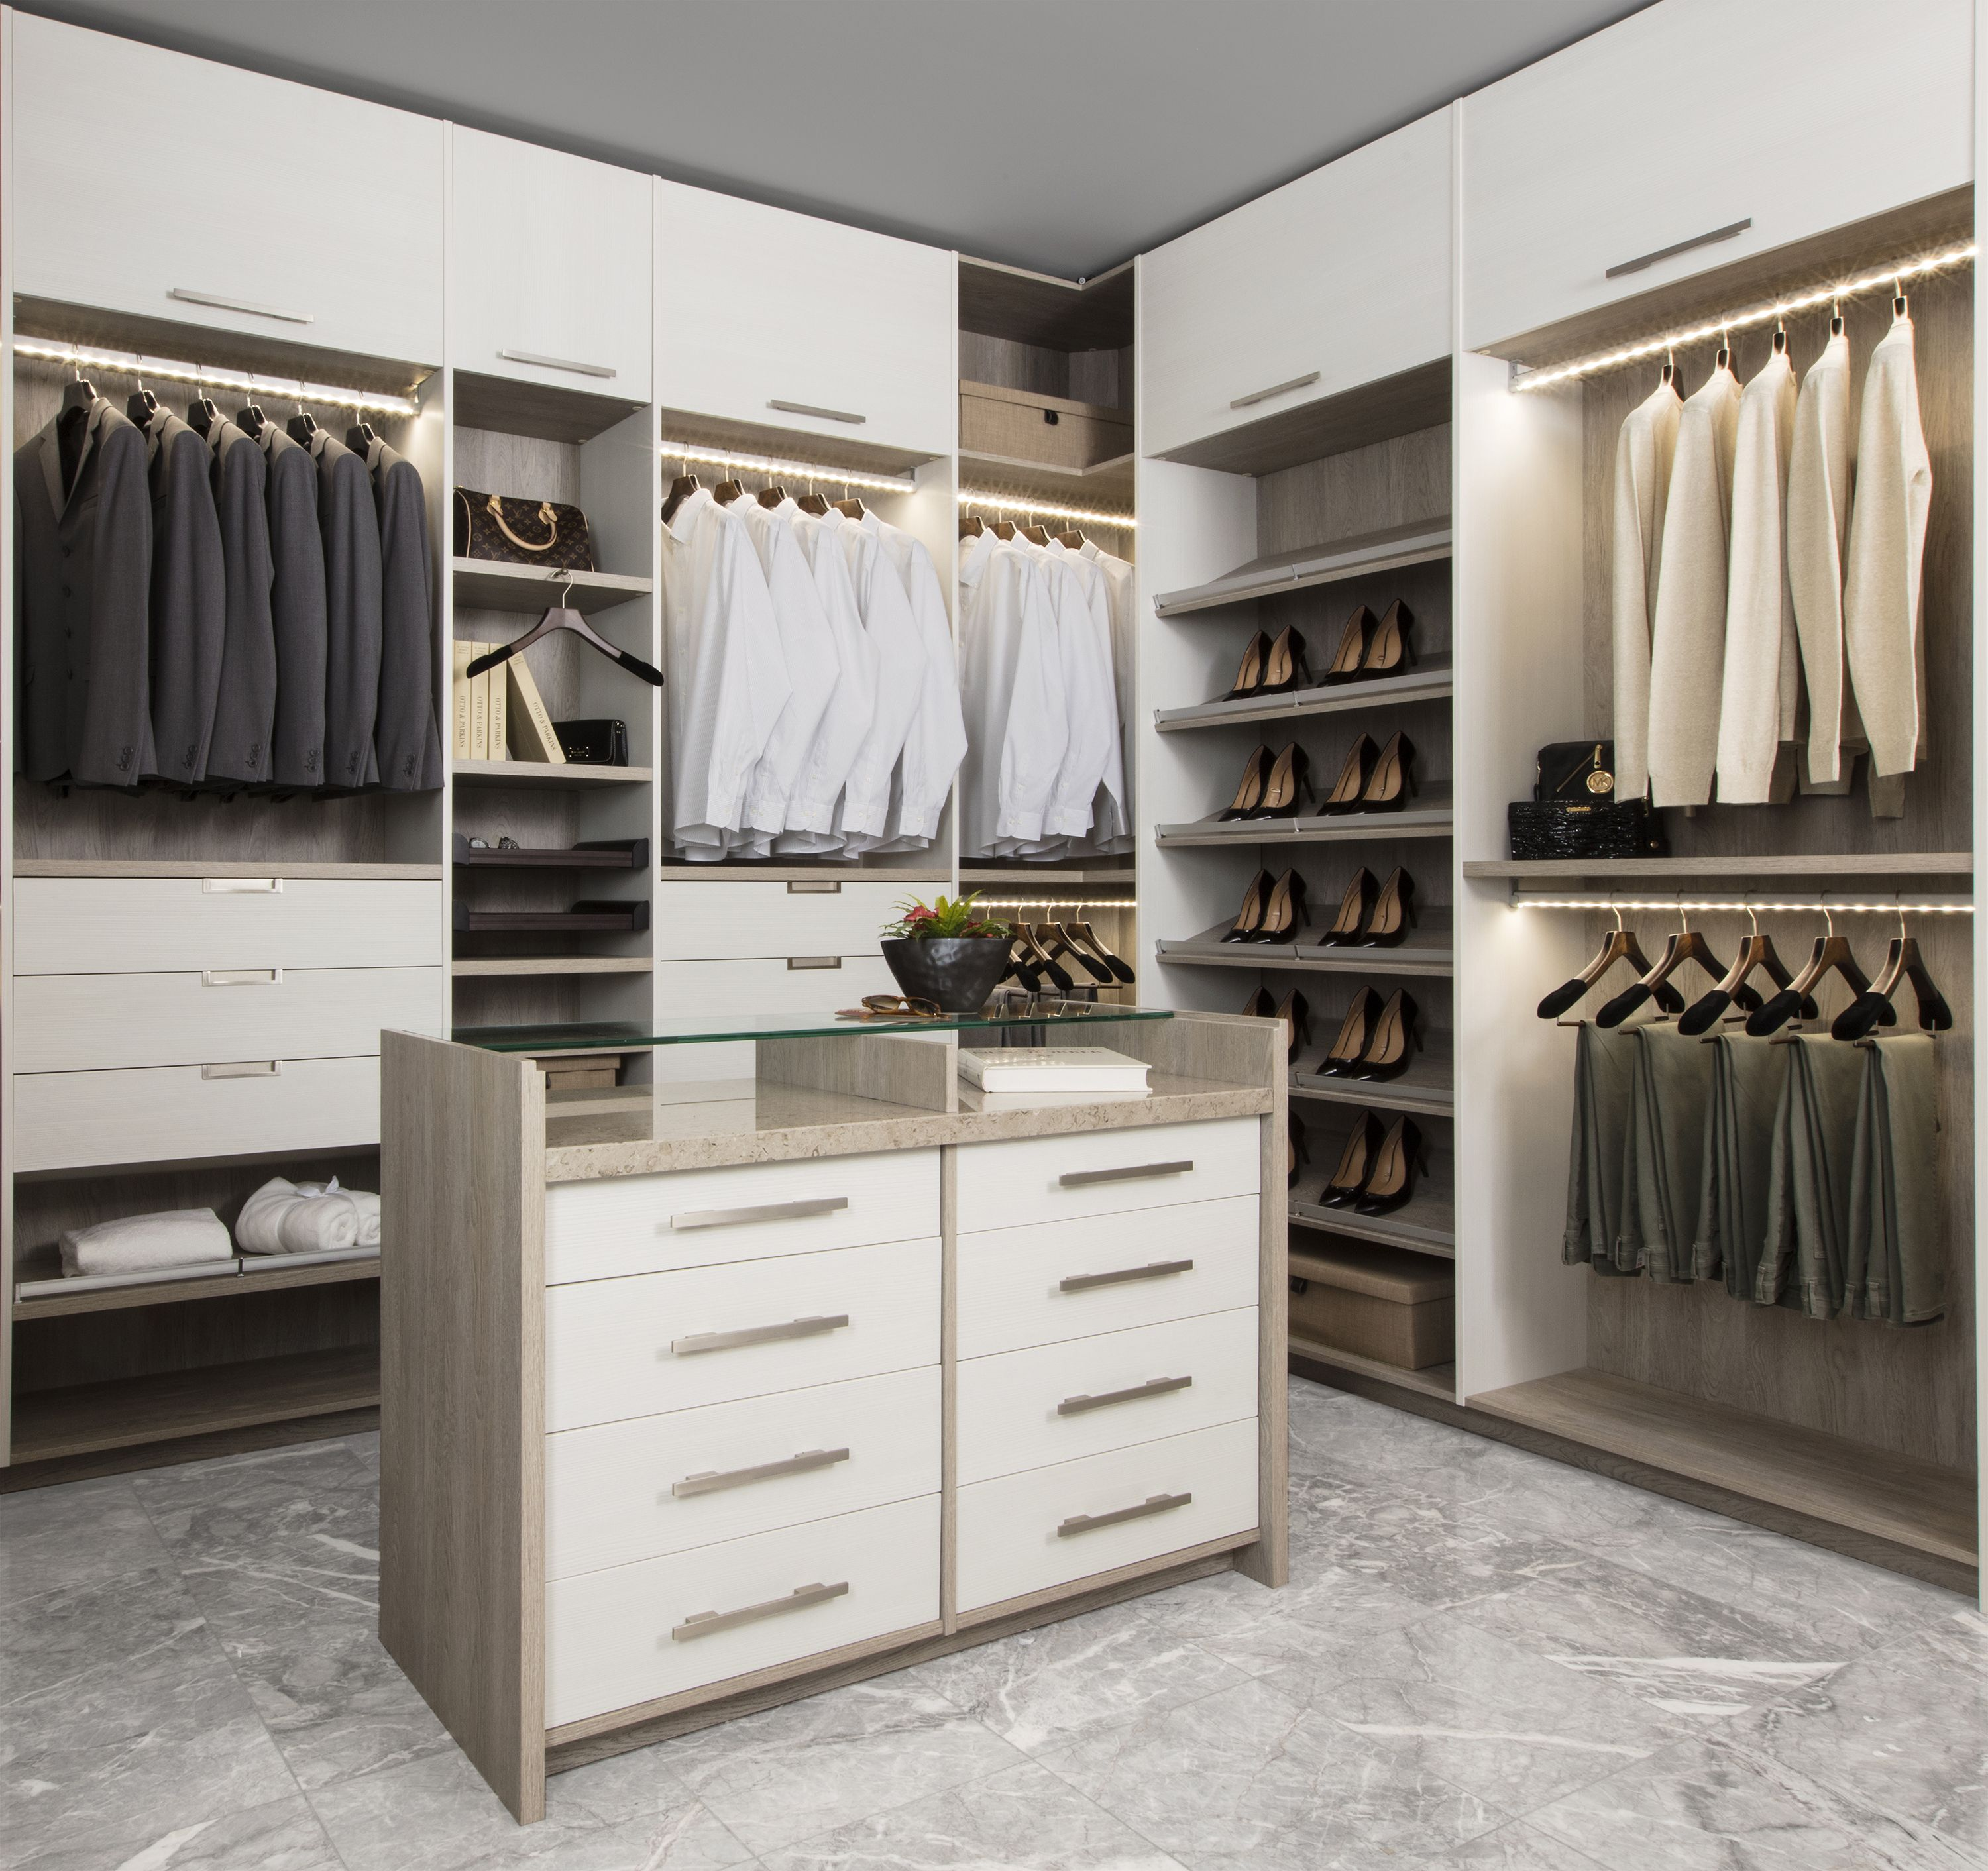 Neo Our Neo Custom Luxury Closet Line Blends Modern Aesthetics With Perfect Organization The Center Island Des Luxury Closet Custom Closets Modern Aesthetics